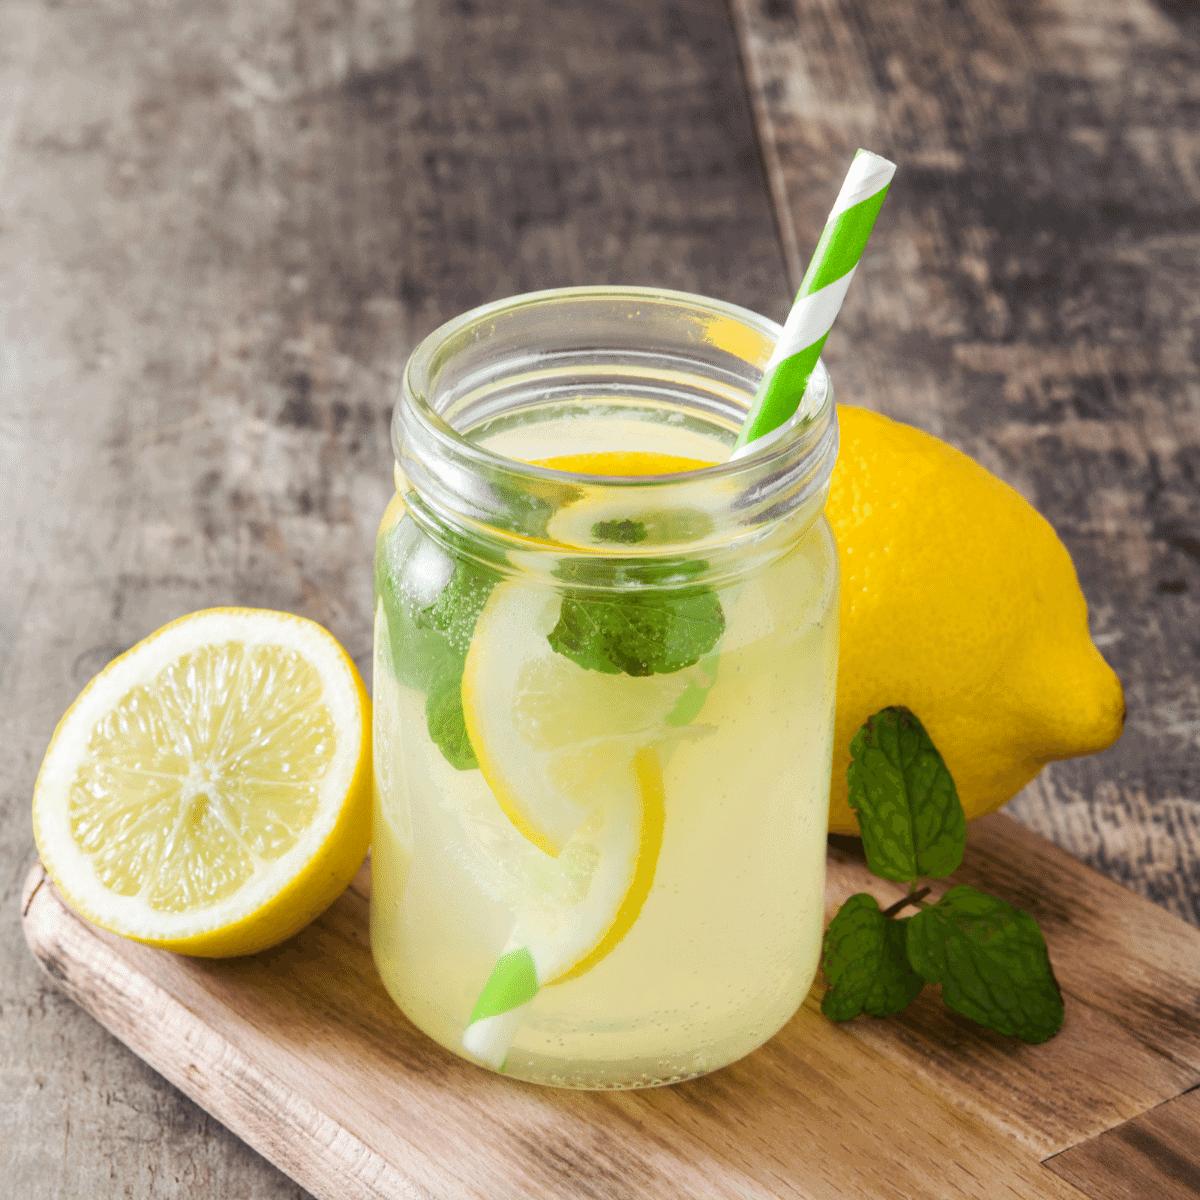 A glass of fresh homemade lemonade in a glass, garnished with fresh lemon slices and fresh mint